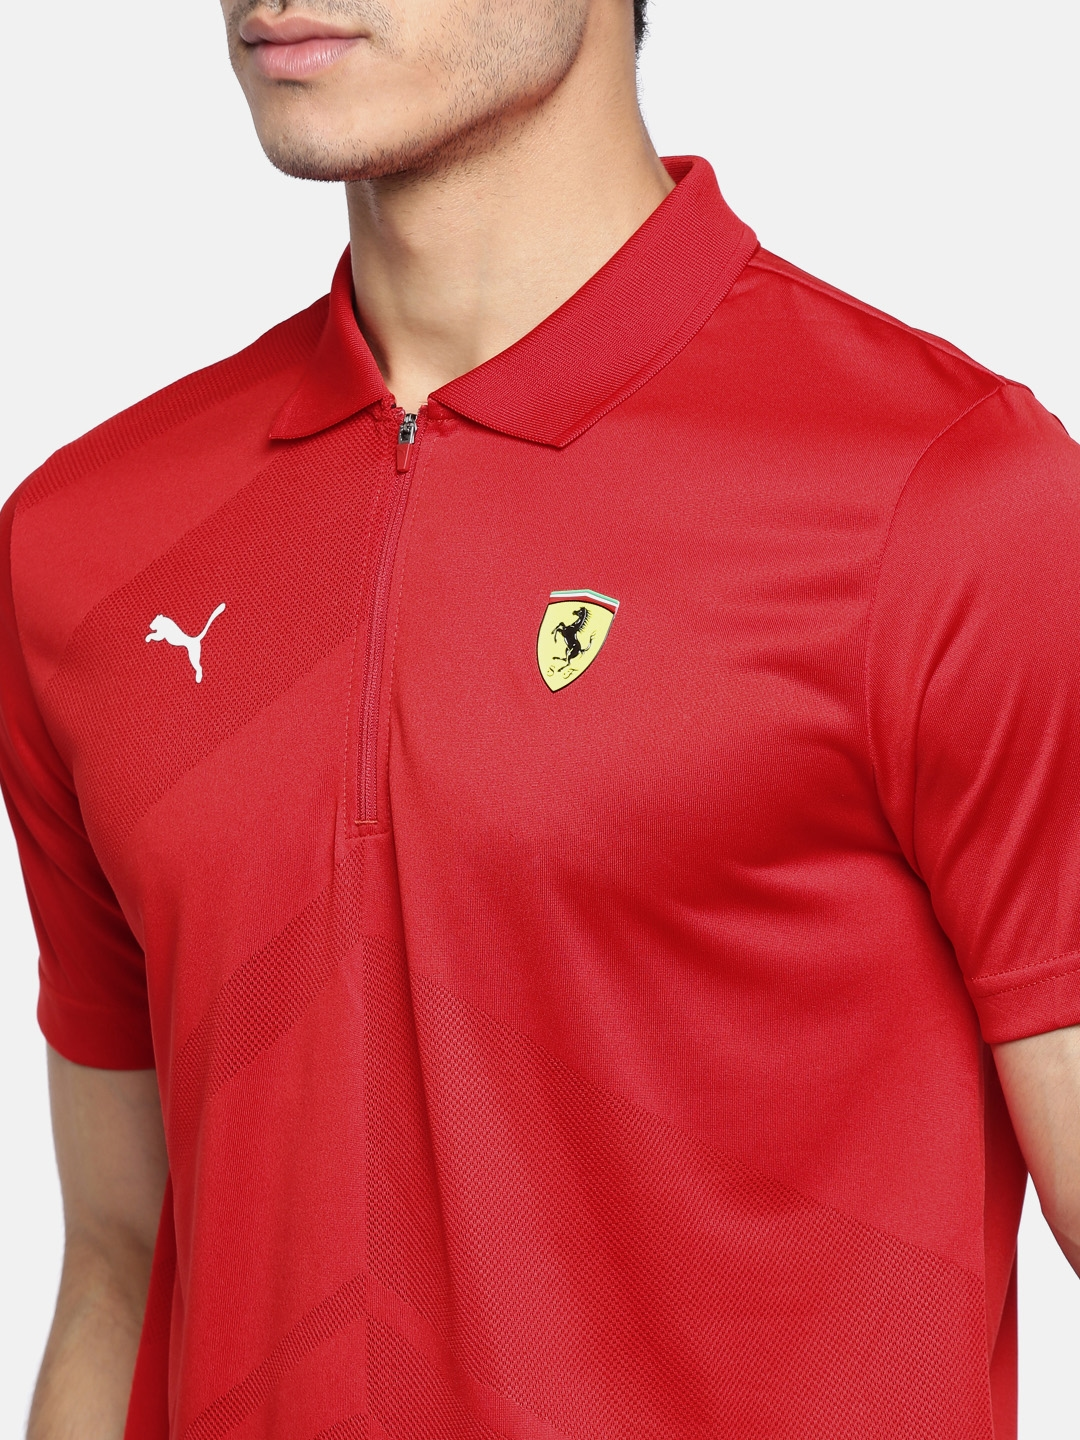 Buy Puma Men Red Self Design Scuderia Ferrari EVO Polo T Shirt ... 67235ca5b